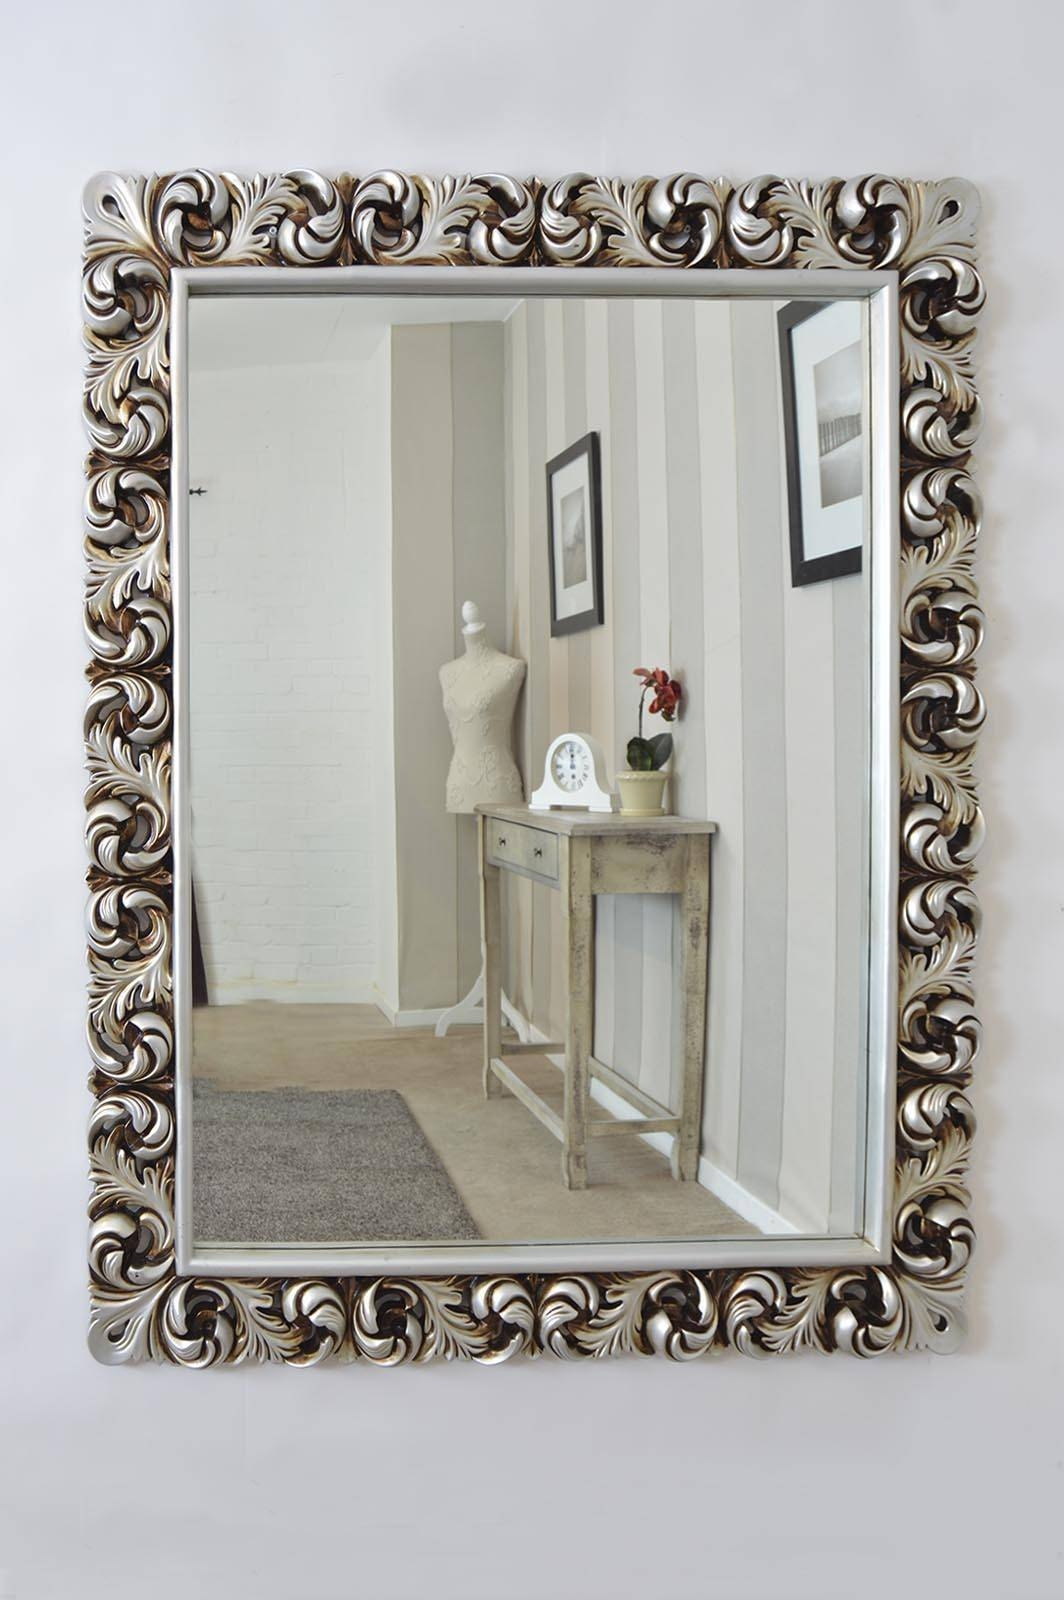 Antique Style Wall Mirrors | Best Decor Things for Antique Style Wall Mirrors (Image 5 of 25)